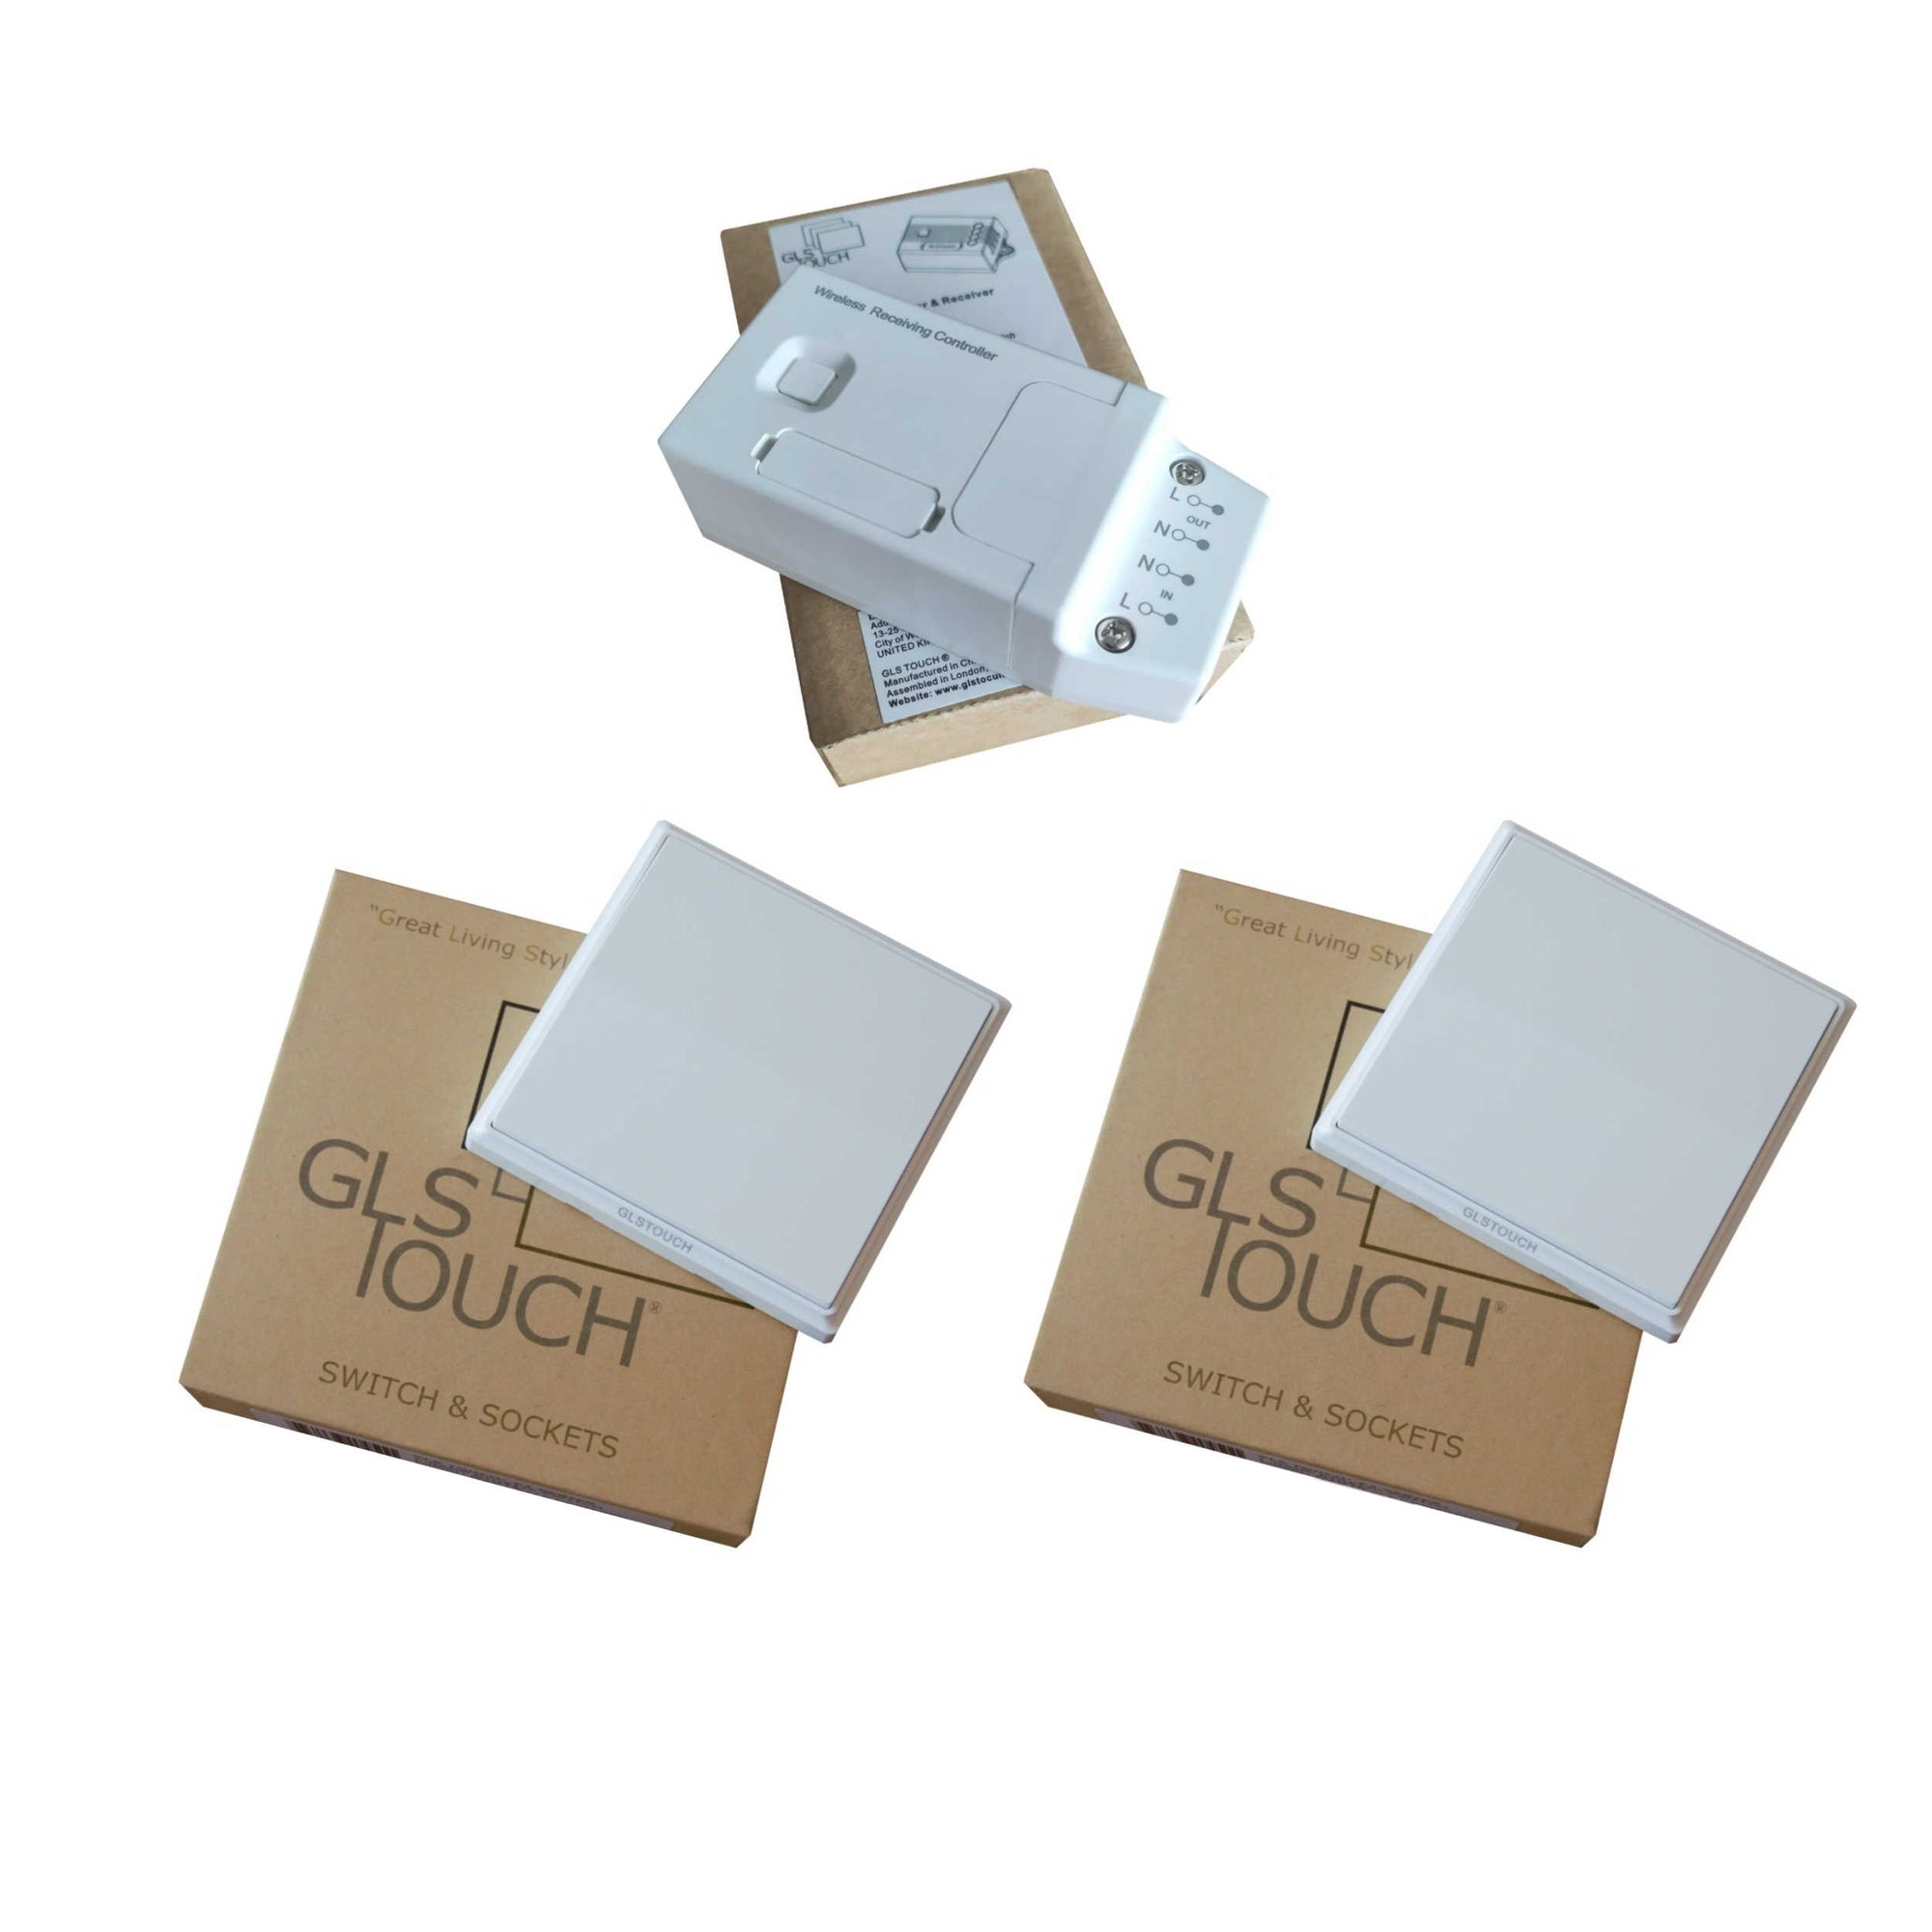 GLSTouch Kinetic RF Wireless 1 Gang 2 Way Light Switch Kit Pack